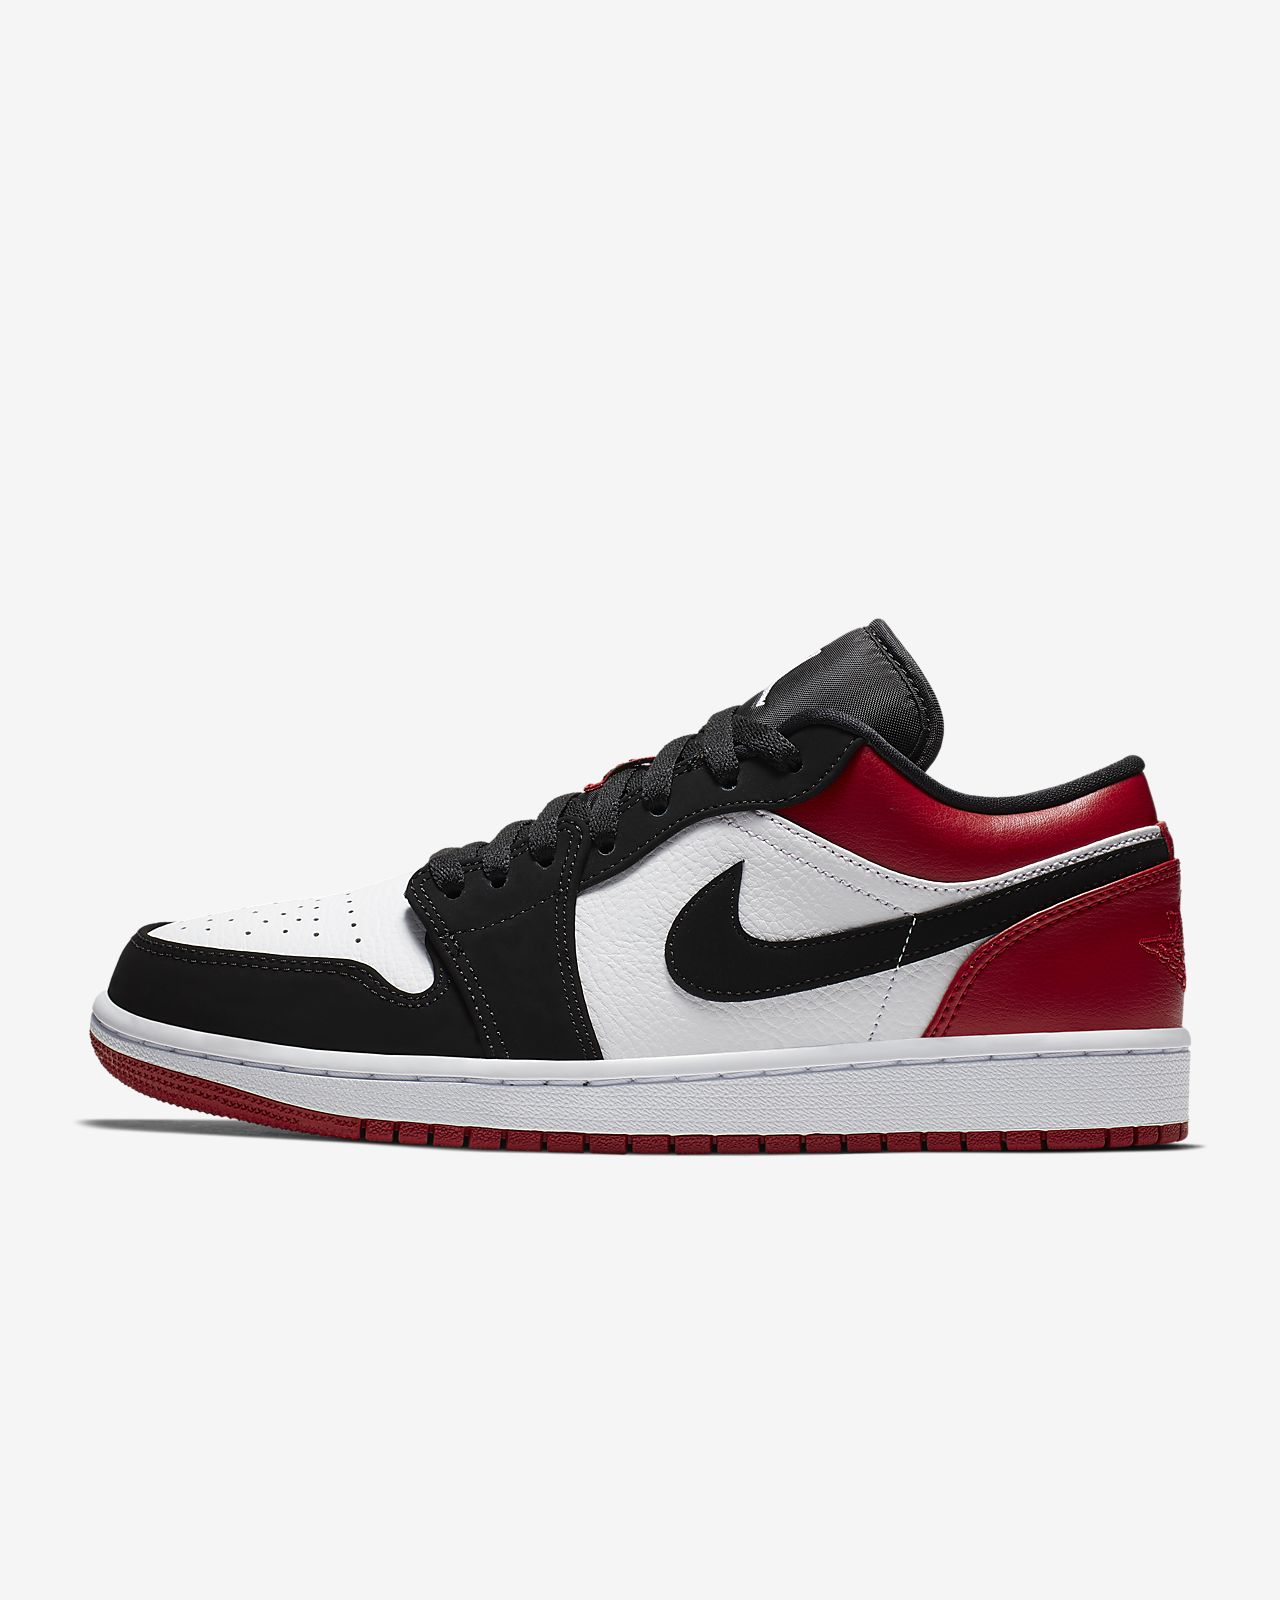 new arrival a9ce0 c5986 Air Jordan 1 Low Men's Shoe